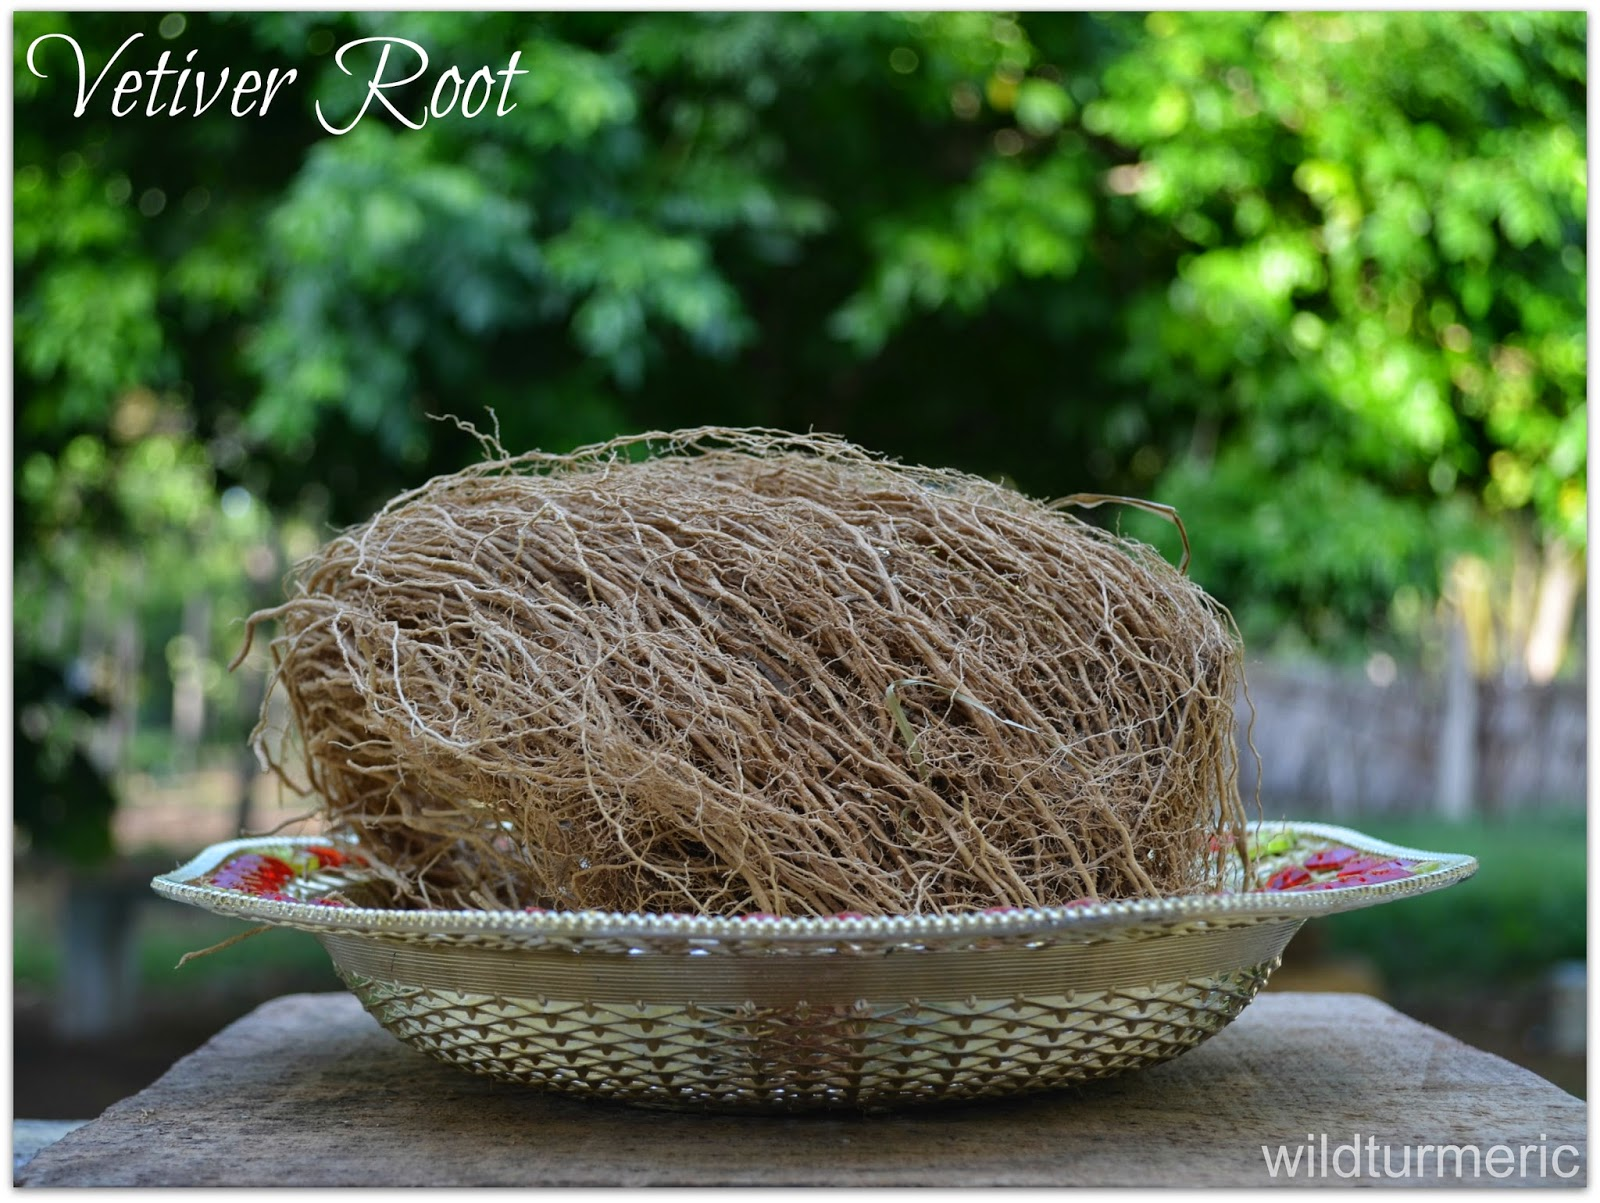 5 Amazing Medicinal Uses & Benefits of Vetiver for Hair, Skin and Health